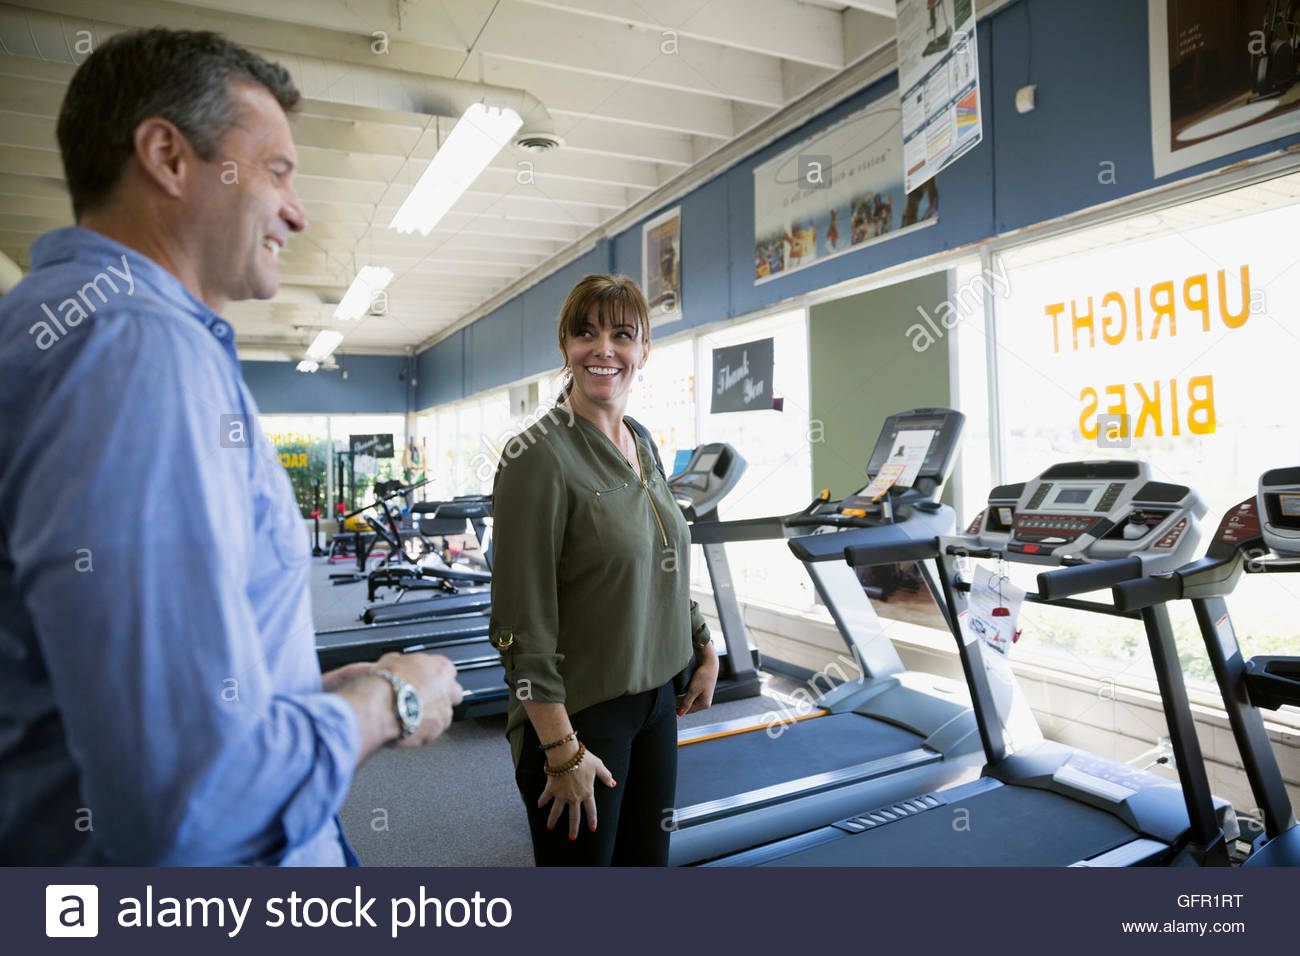 Couple browsing treadmills in home gym equipment store - Stock Image